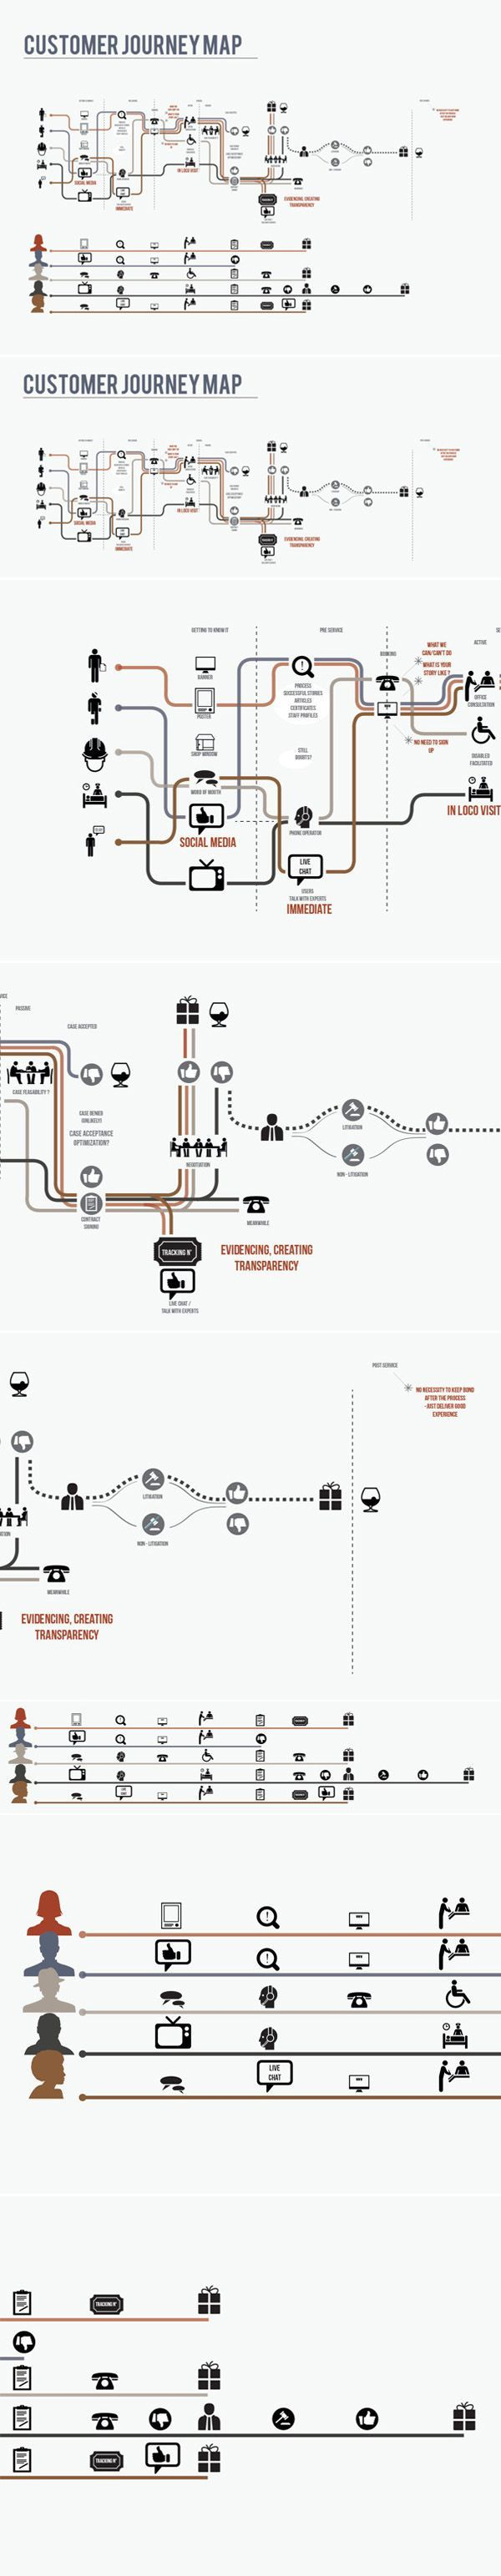 Infographic about journey, in similar style to London Underground map with pictograms #ux #customerjourney